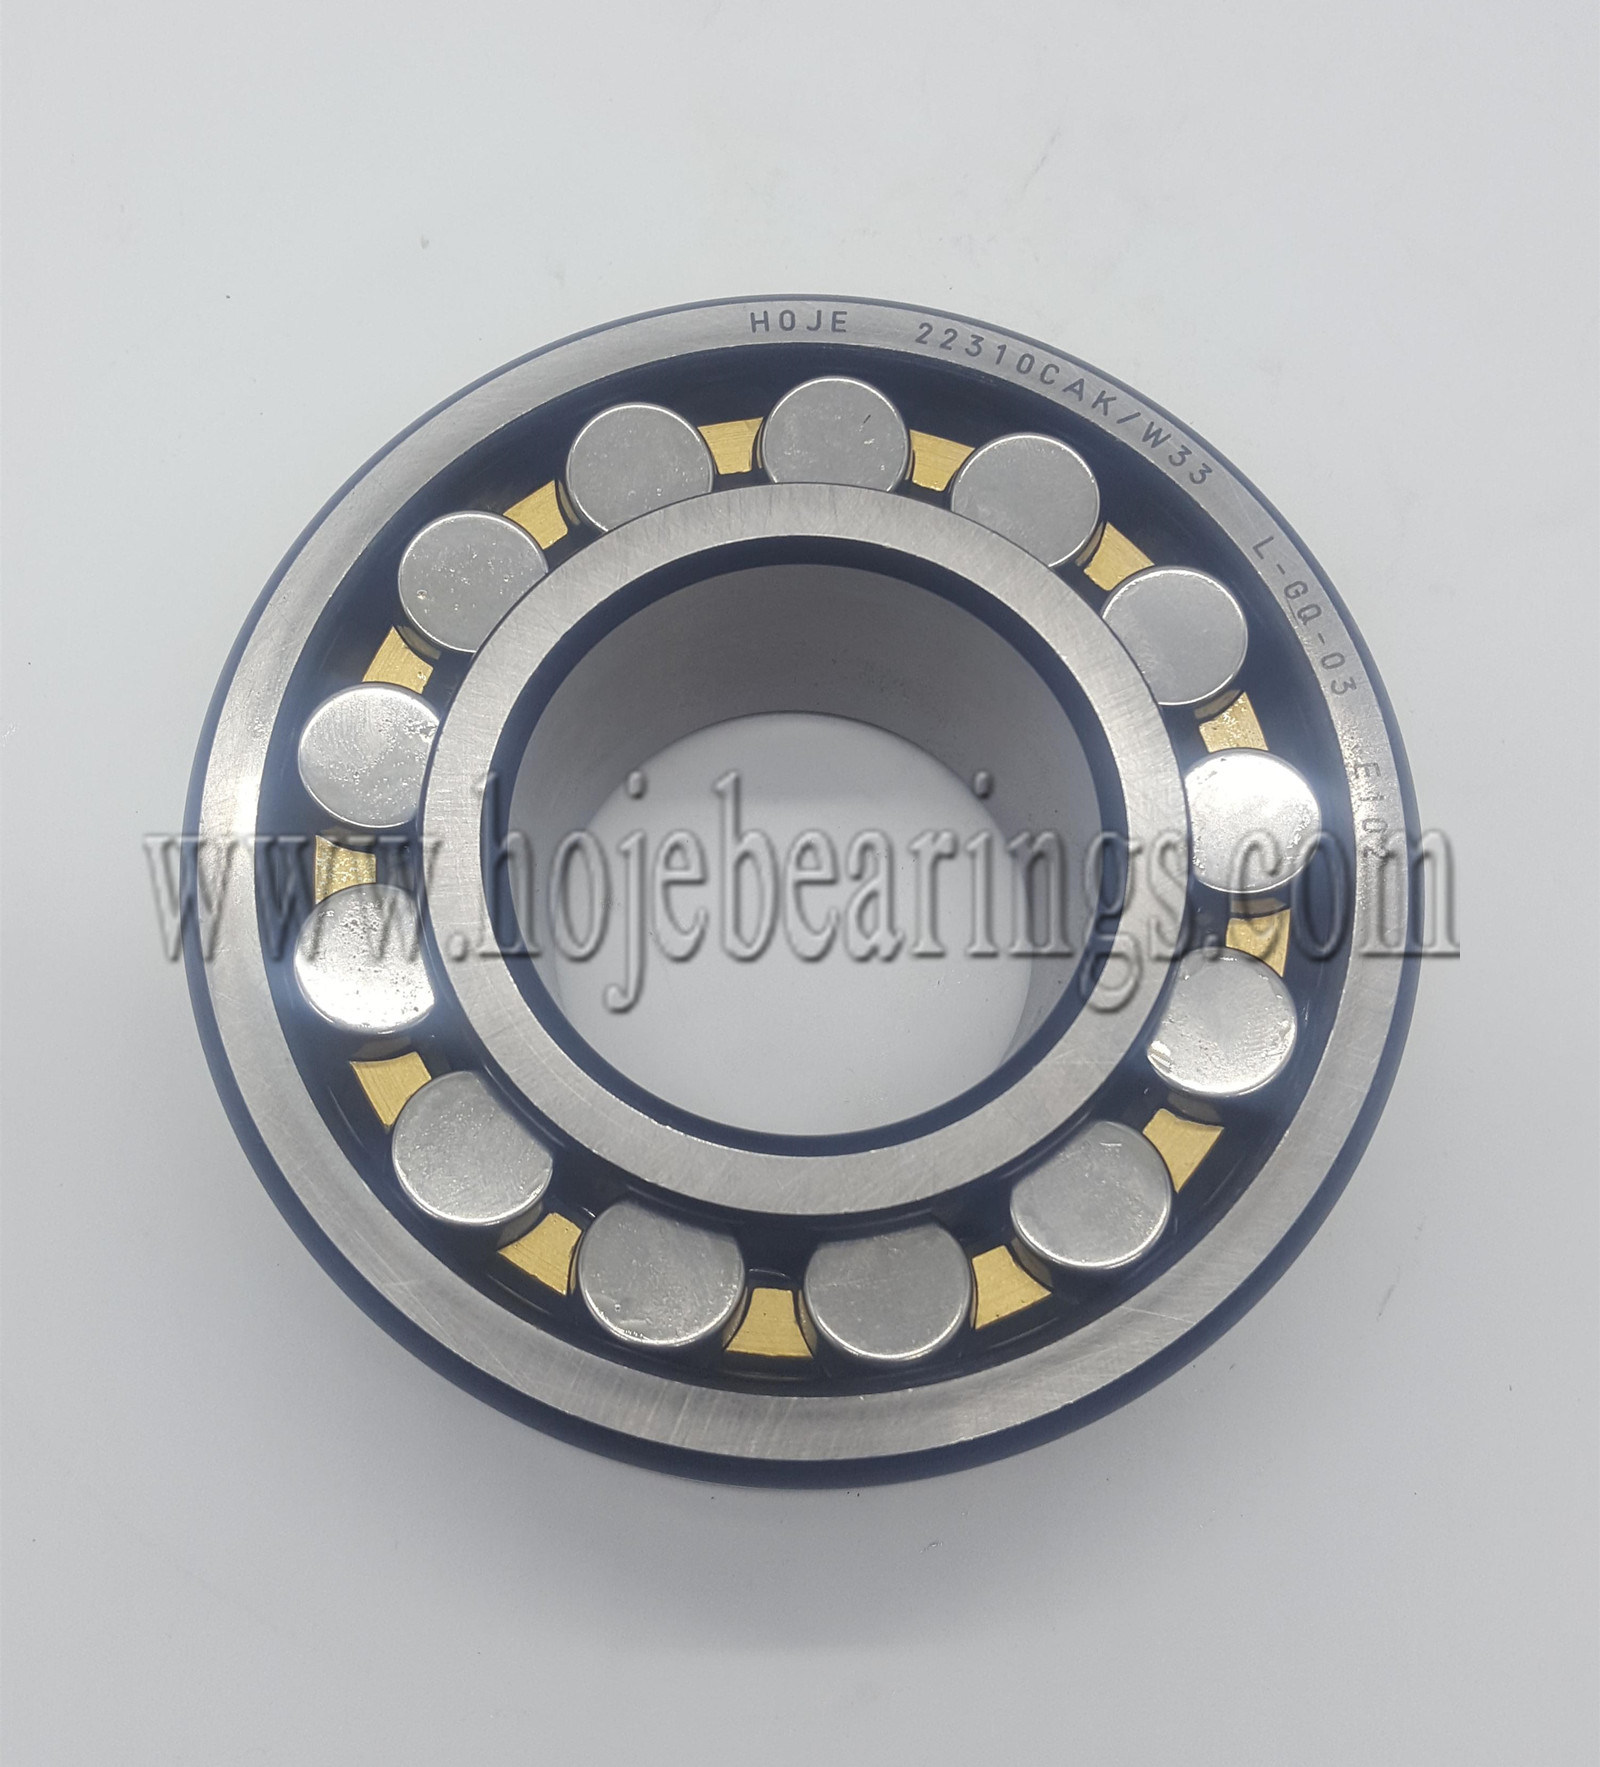 Auto Spare Parts NSK Original Spherical Roller Bearing 22311